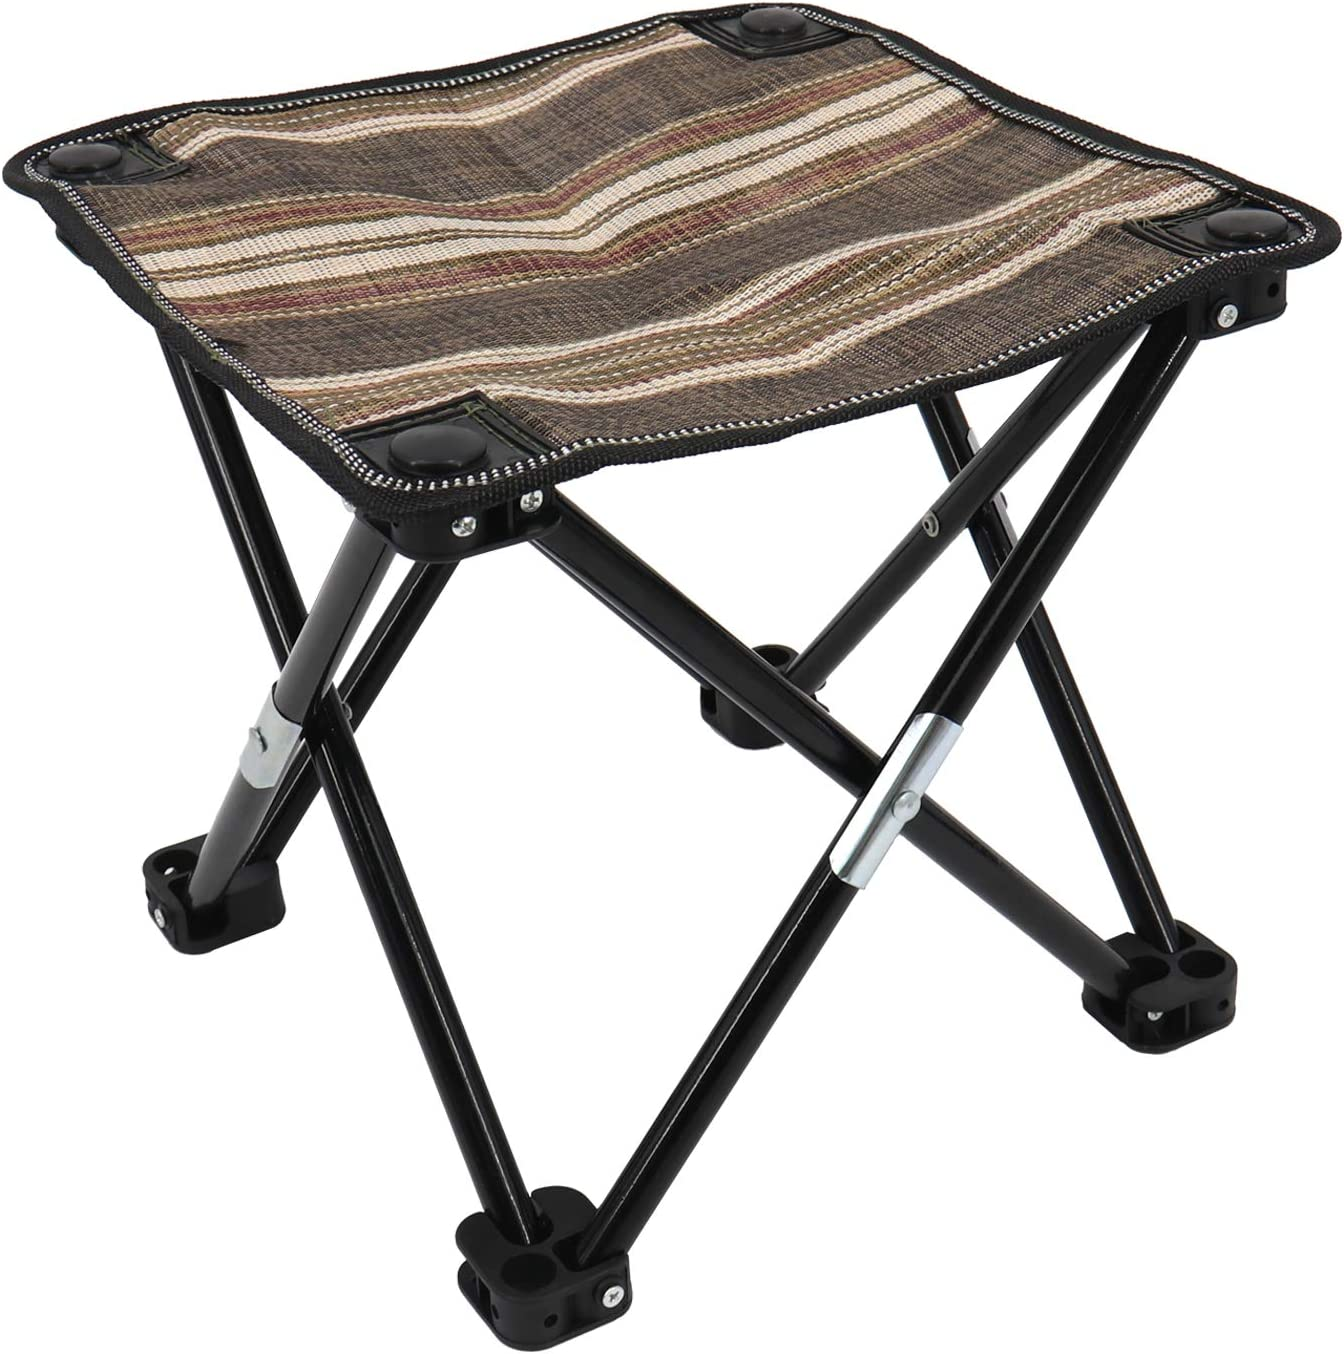 JM Outdoor Mini Folding Chair Portable Stool for Camping Fishing Party BBQ Travel Hiking Beach Garden 600D Oxford Waterproof Cloth Folding Lightweight Stool Chair